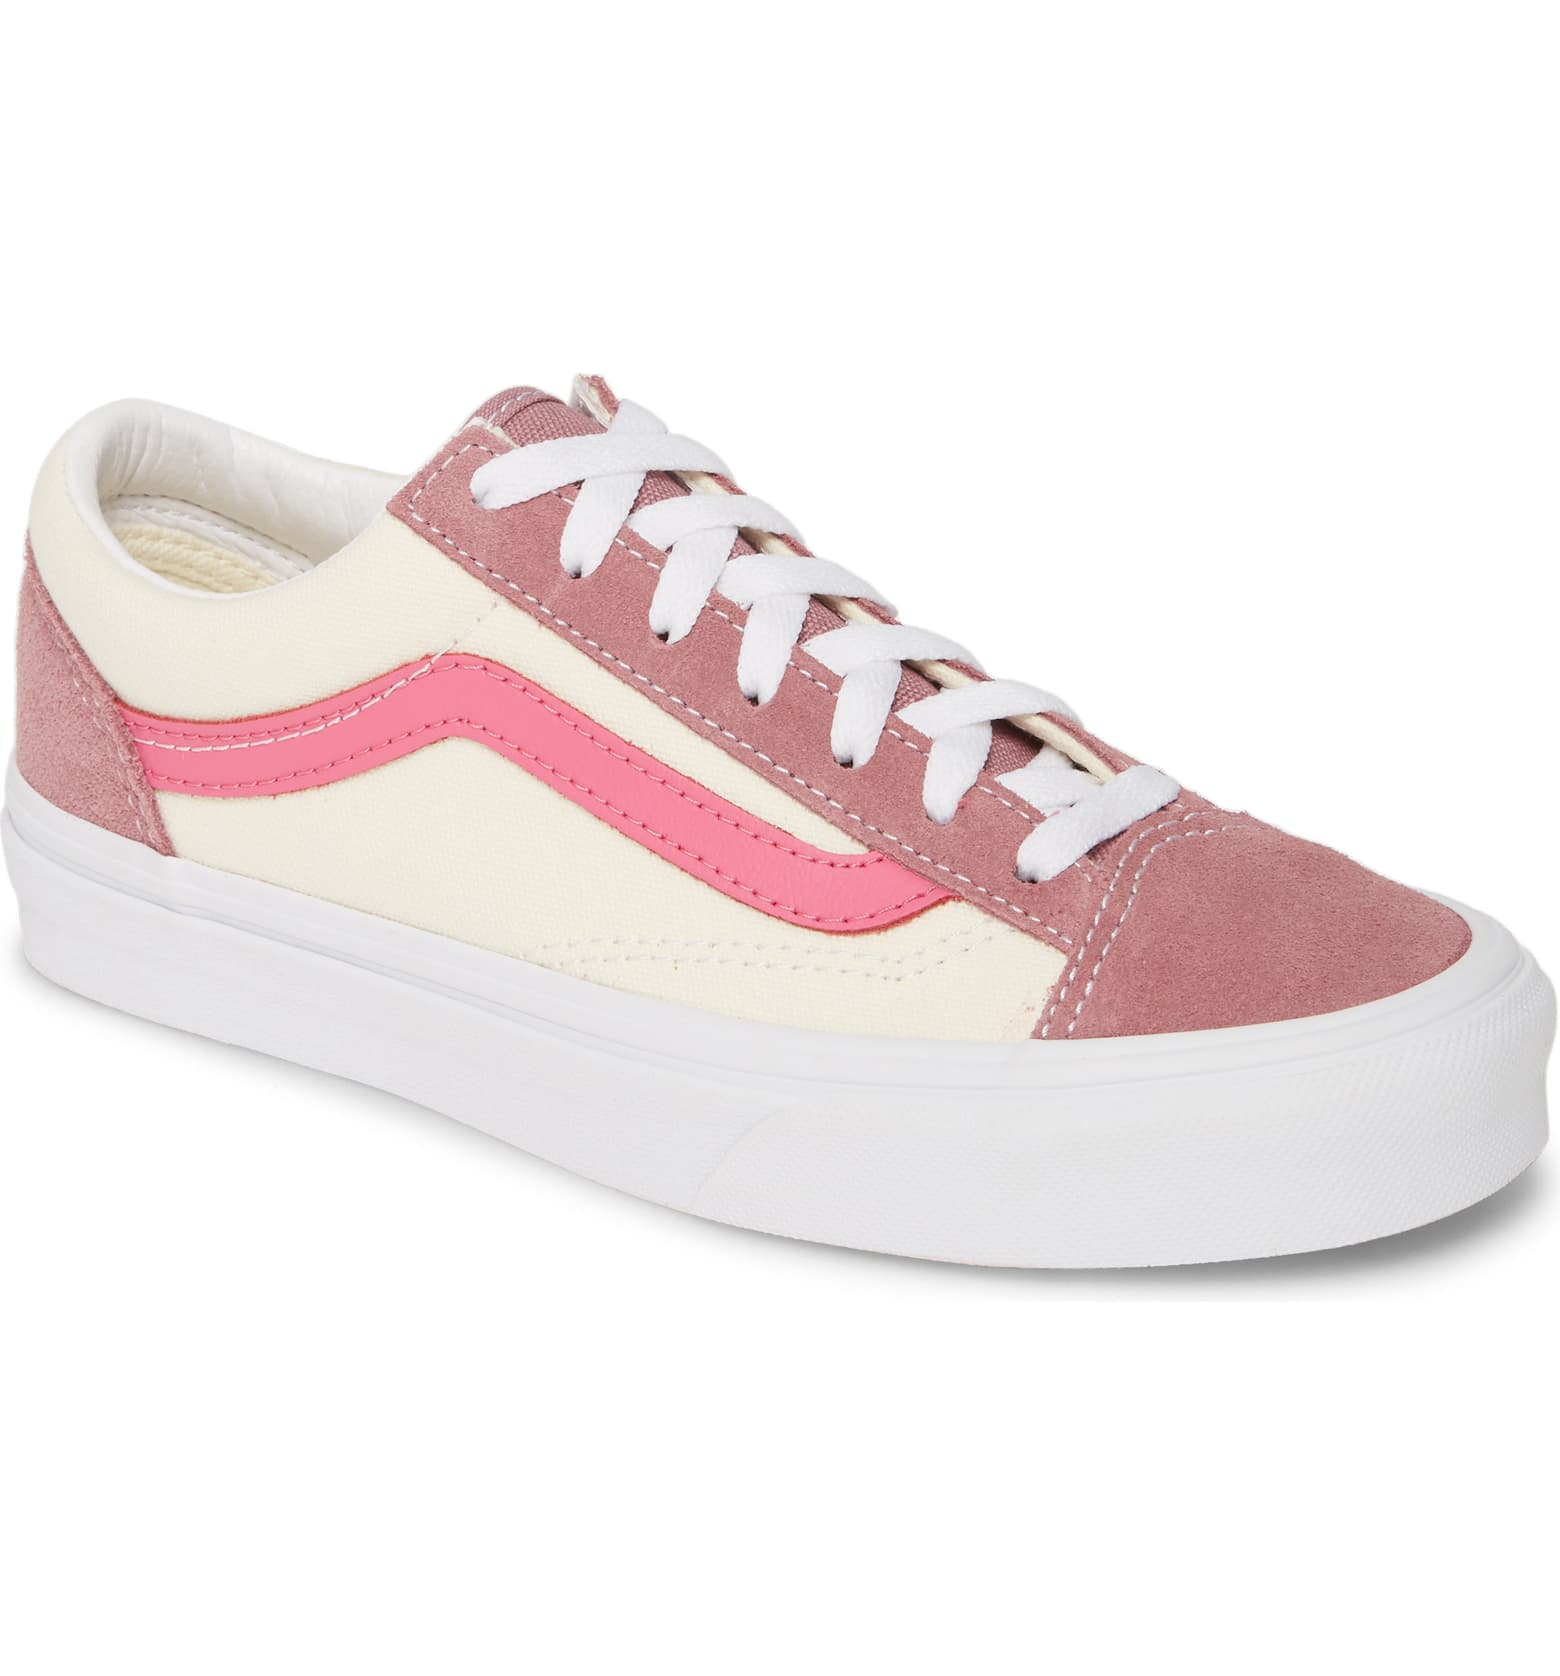 pink and white vans sneaker